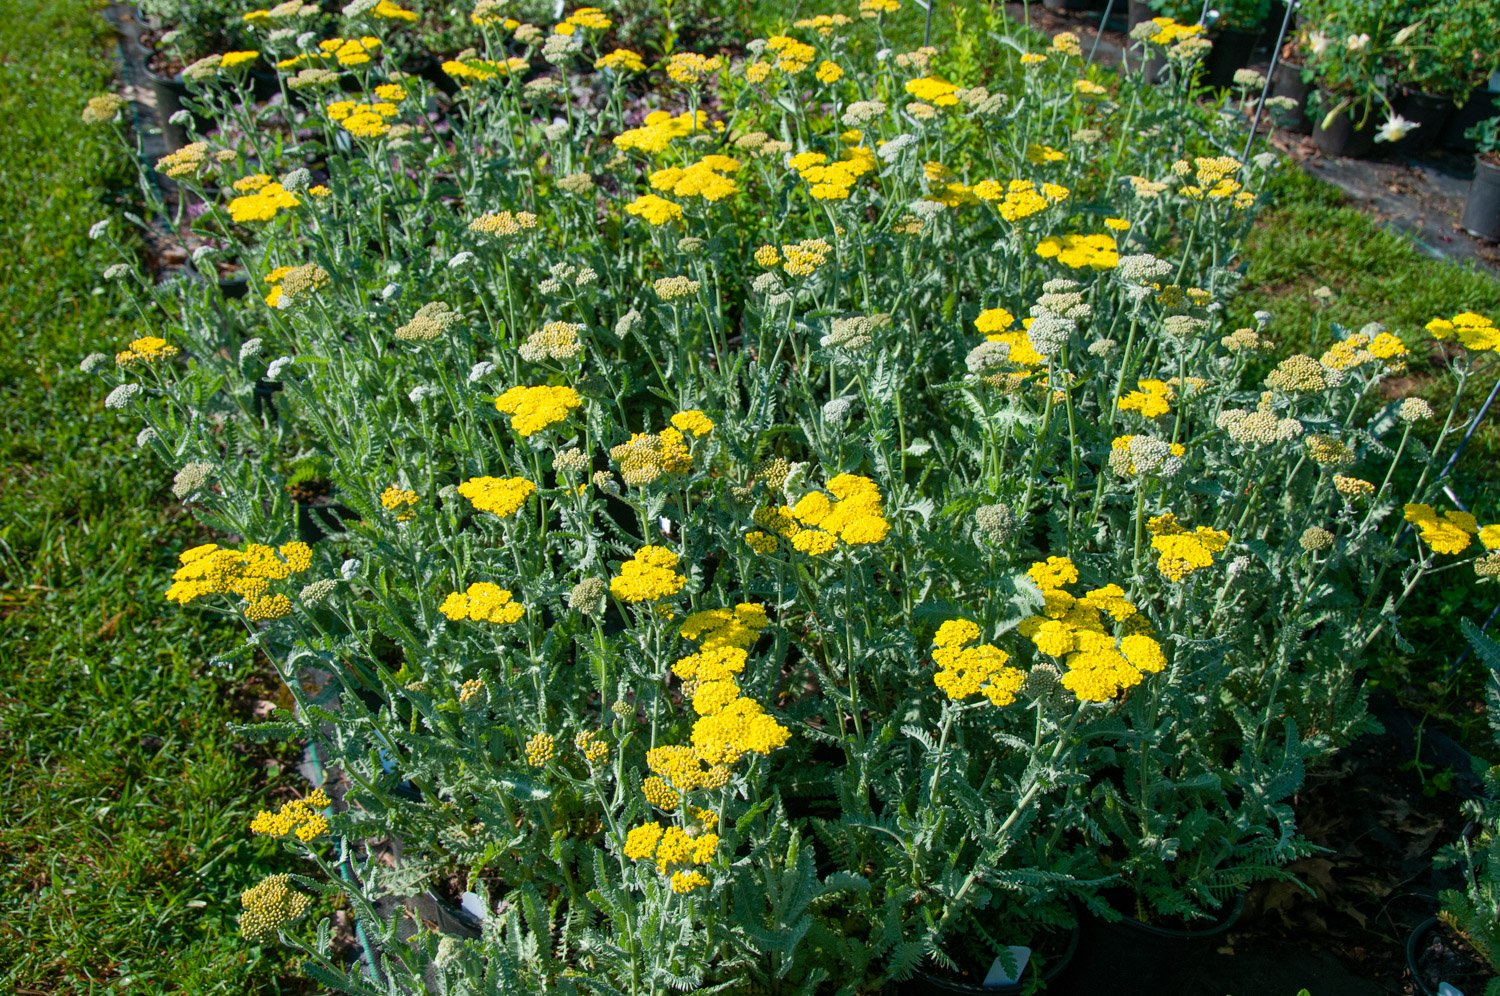 Potted Yarrow 'Moonshine' with yellow blooms